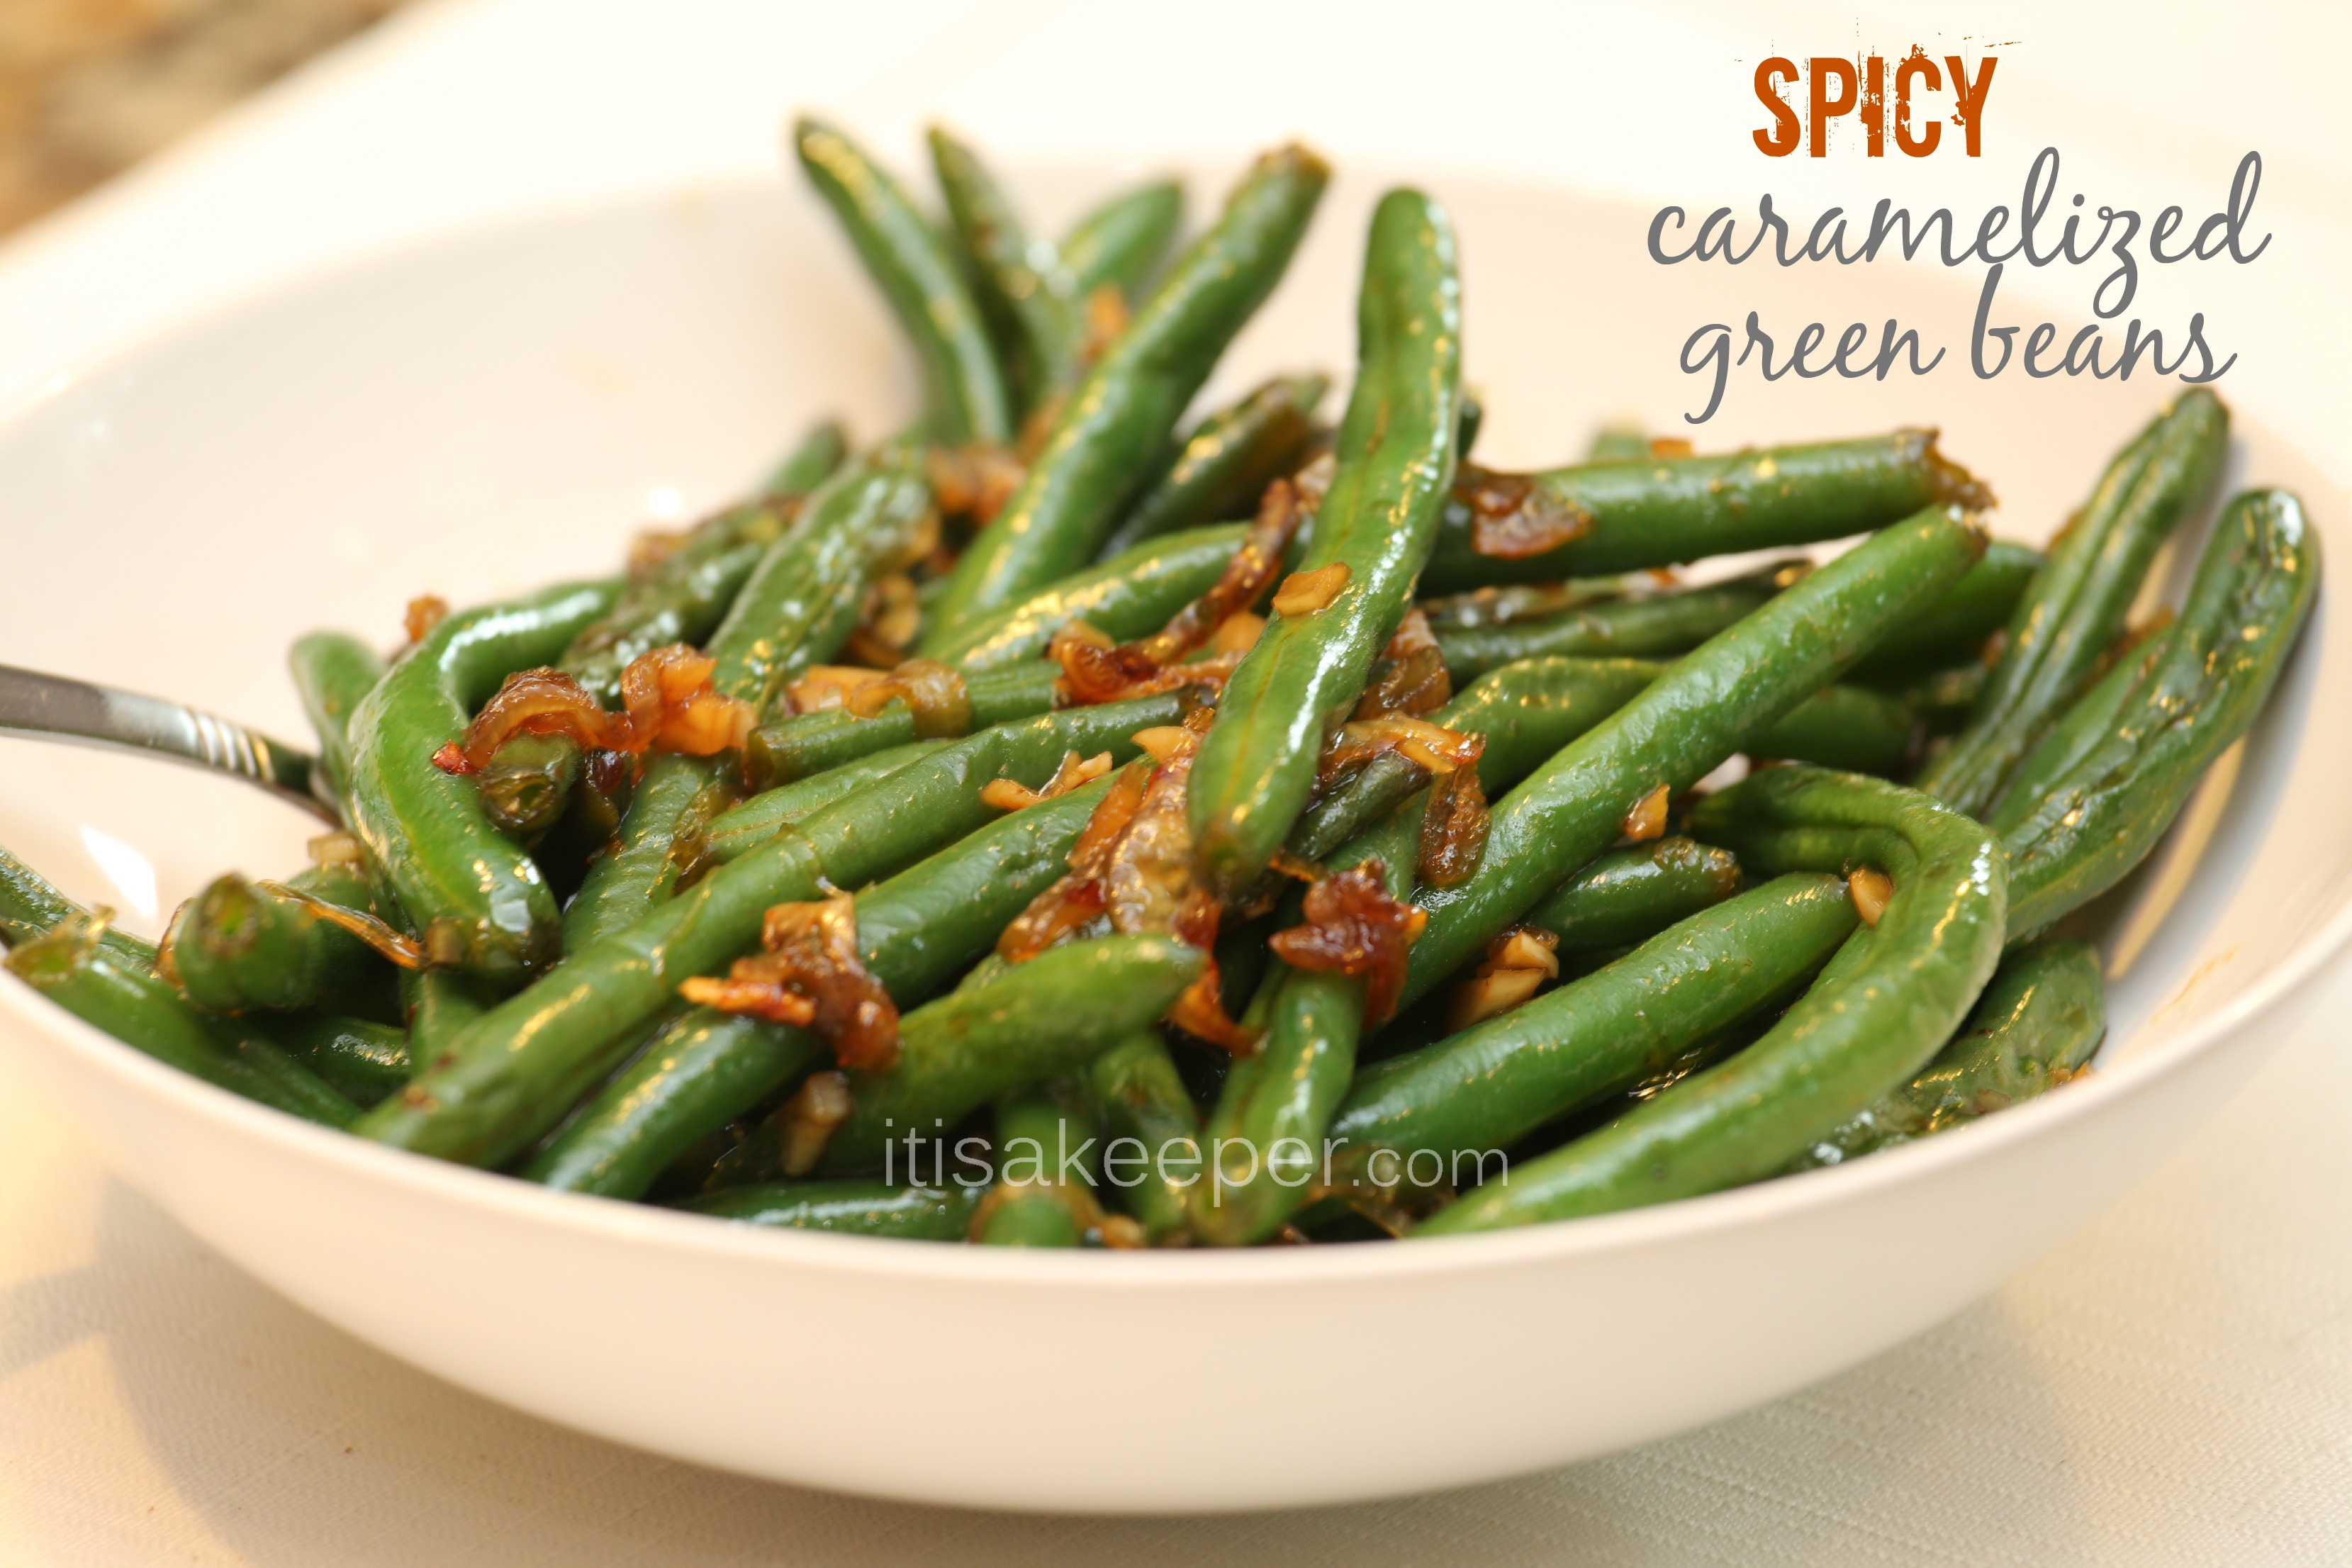 Easy Side Dishes: Spicy Caramelized Green Beans